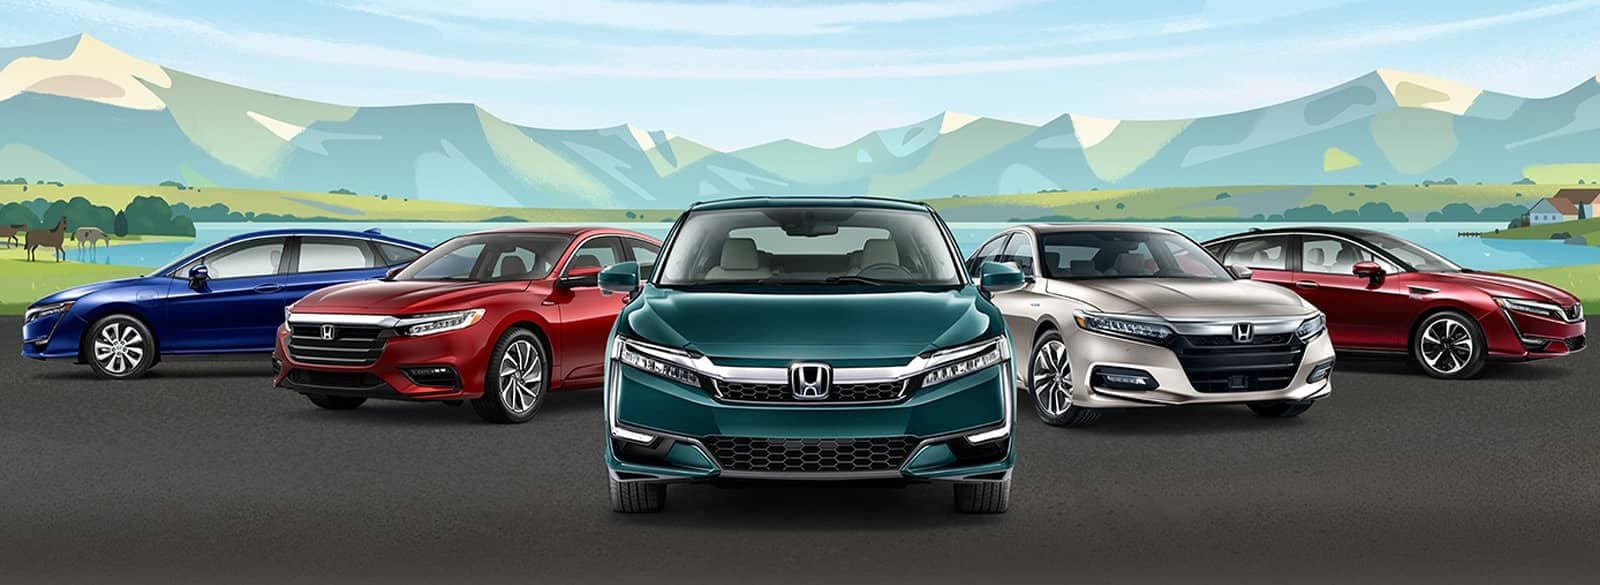 SEO image of Honda vehicles in a line